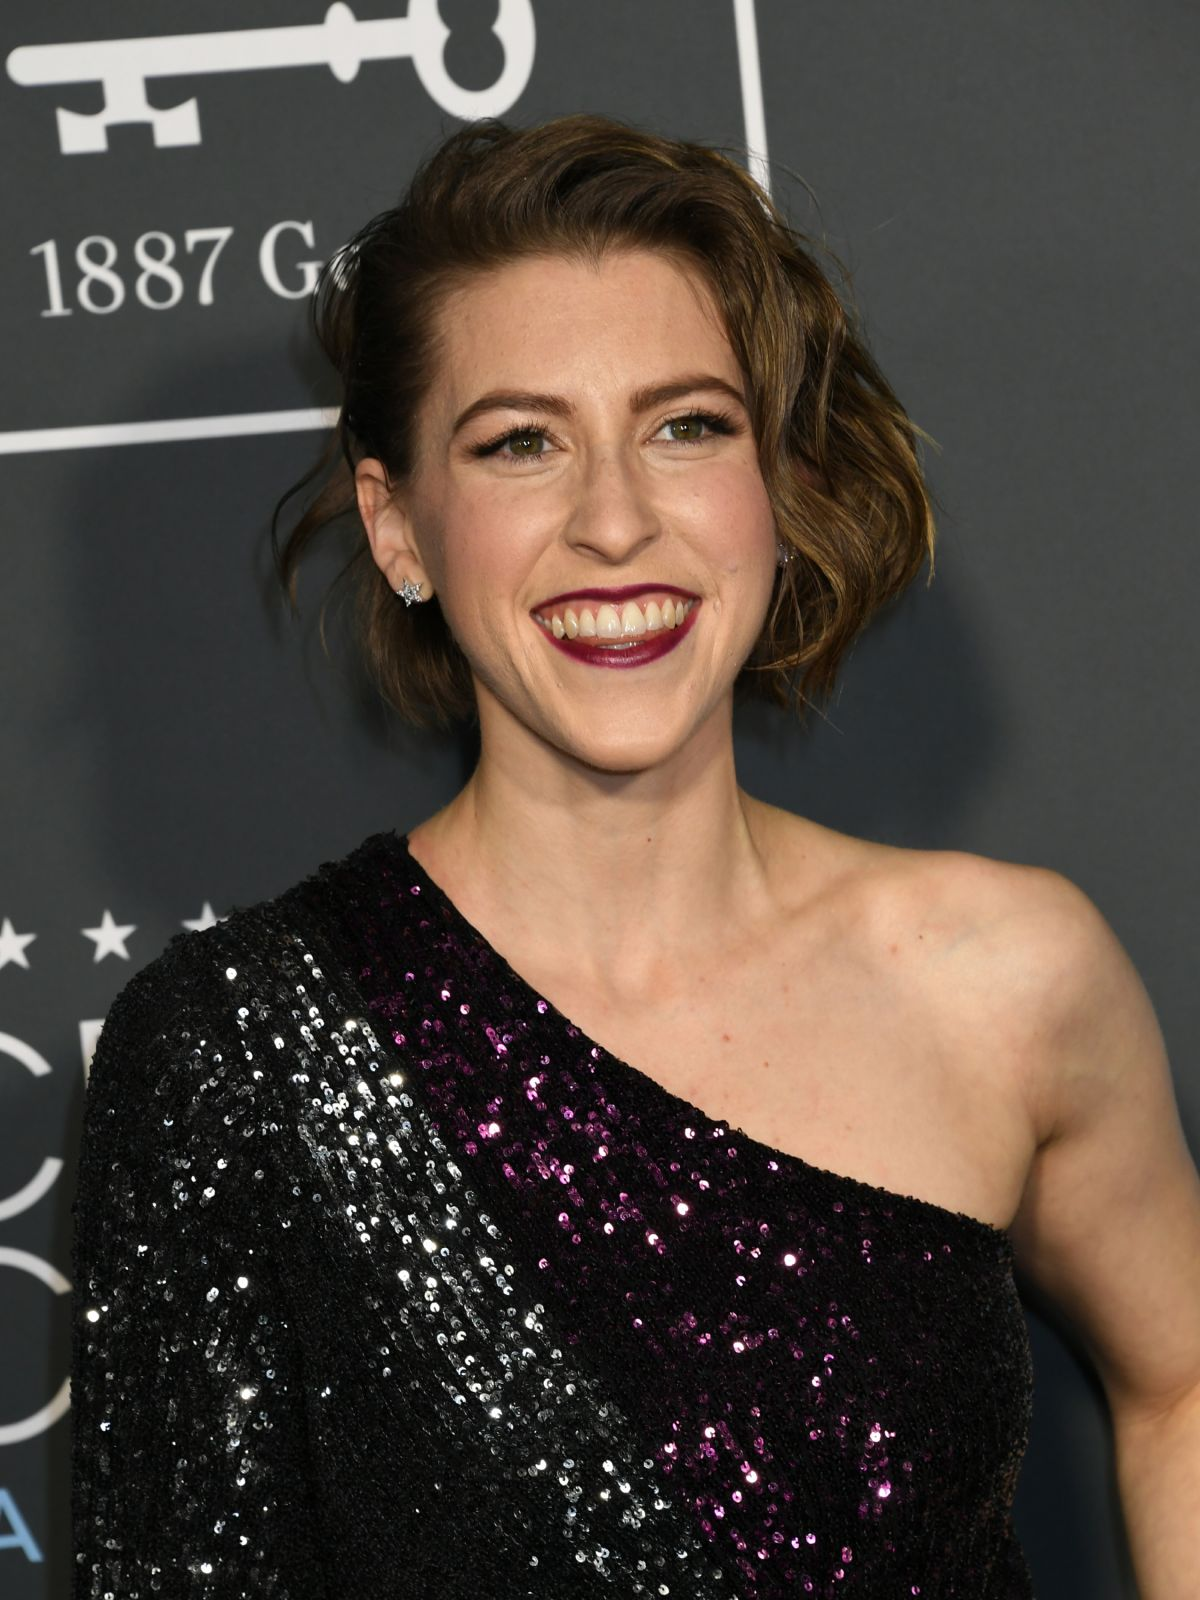 01 13 15 Today S Card Was Drawn From The Archangel Power: EDEN SHER At 2019 Critics' Choice Awards In Santa Monica